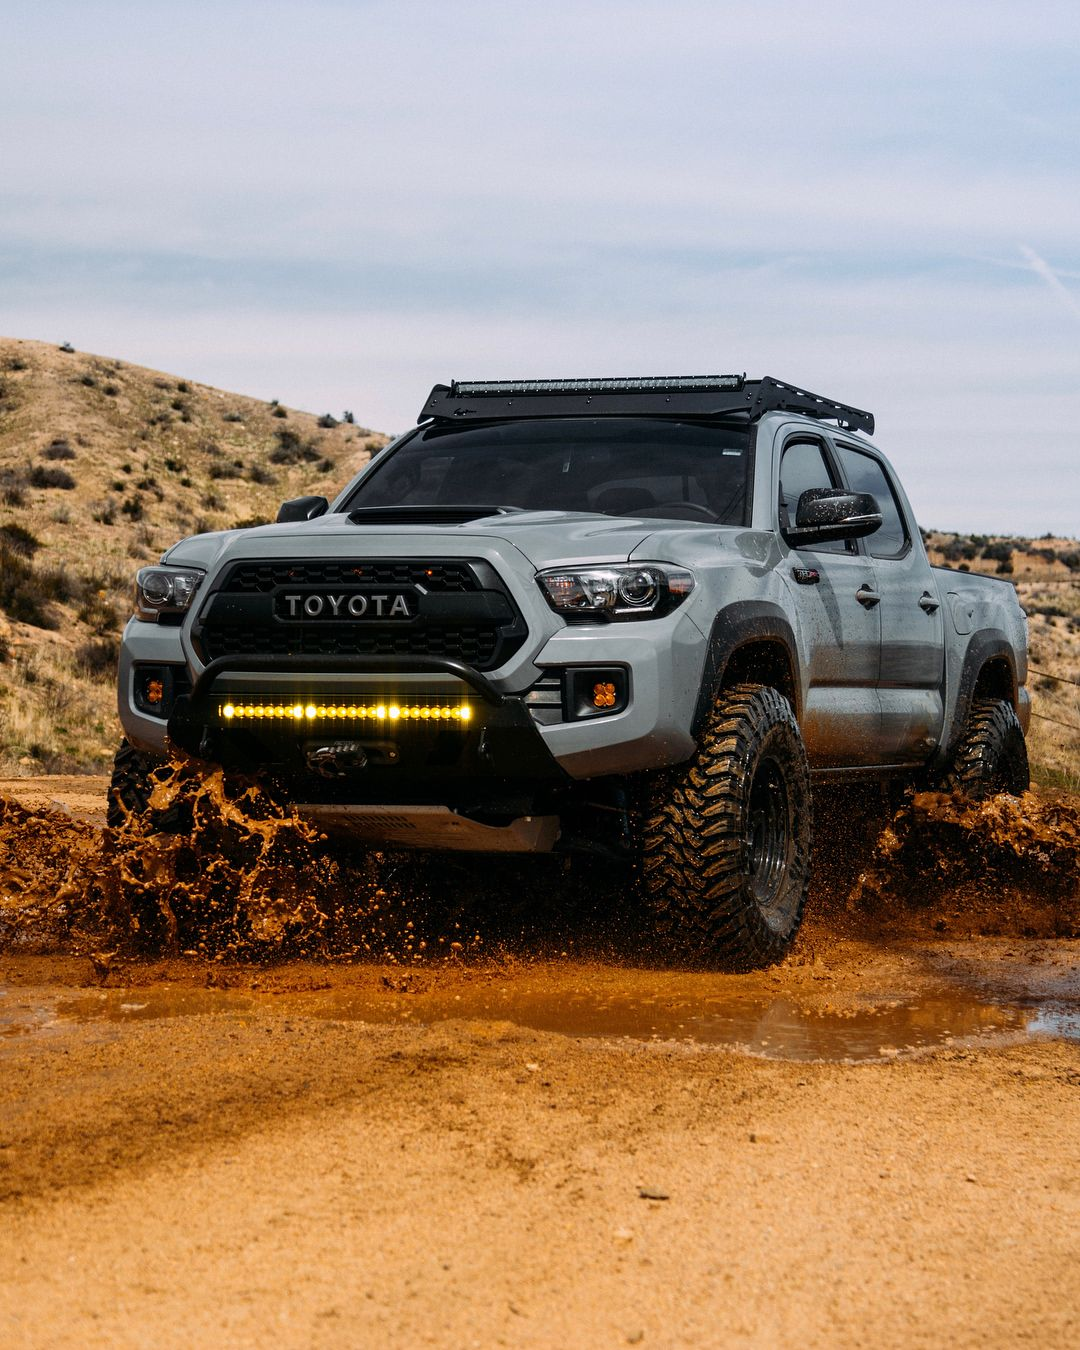 cement tacoma trd pro on instagram all this rain has called for a quick dip alldaymudspa. Black Bedroom Furniture Sets. Home Design Ideas